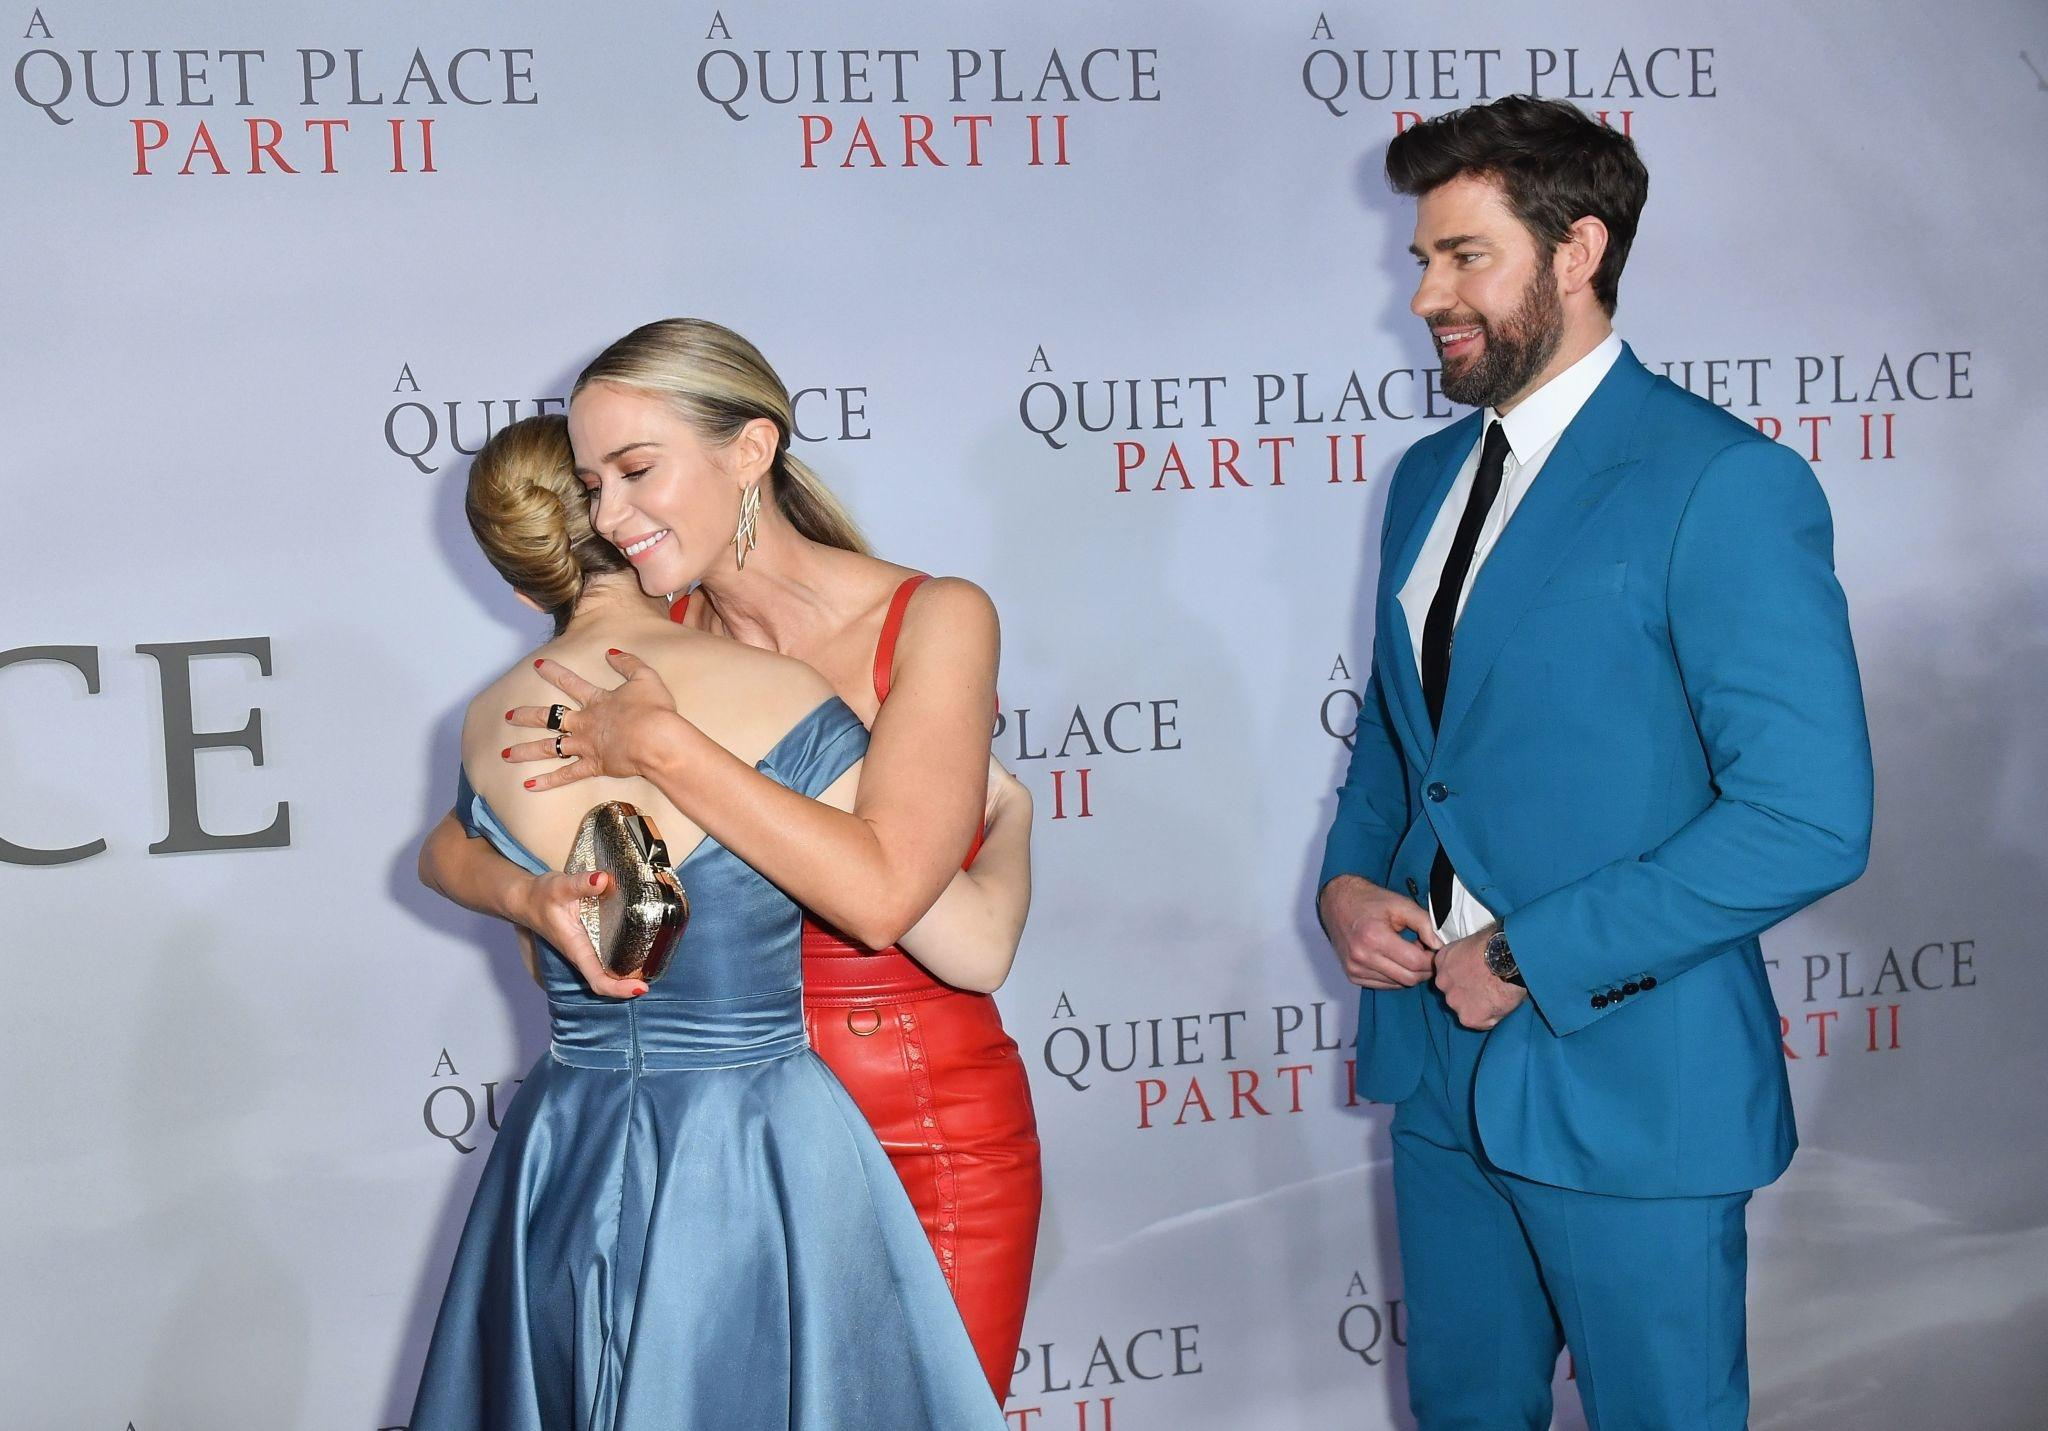 John Krasinski, Emily Blunt, and Millicent Simmonds at an event for A Quiet Place Part II (2020)